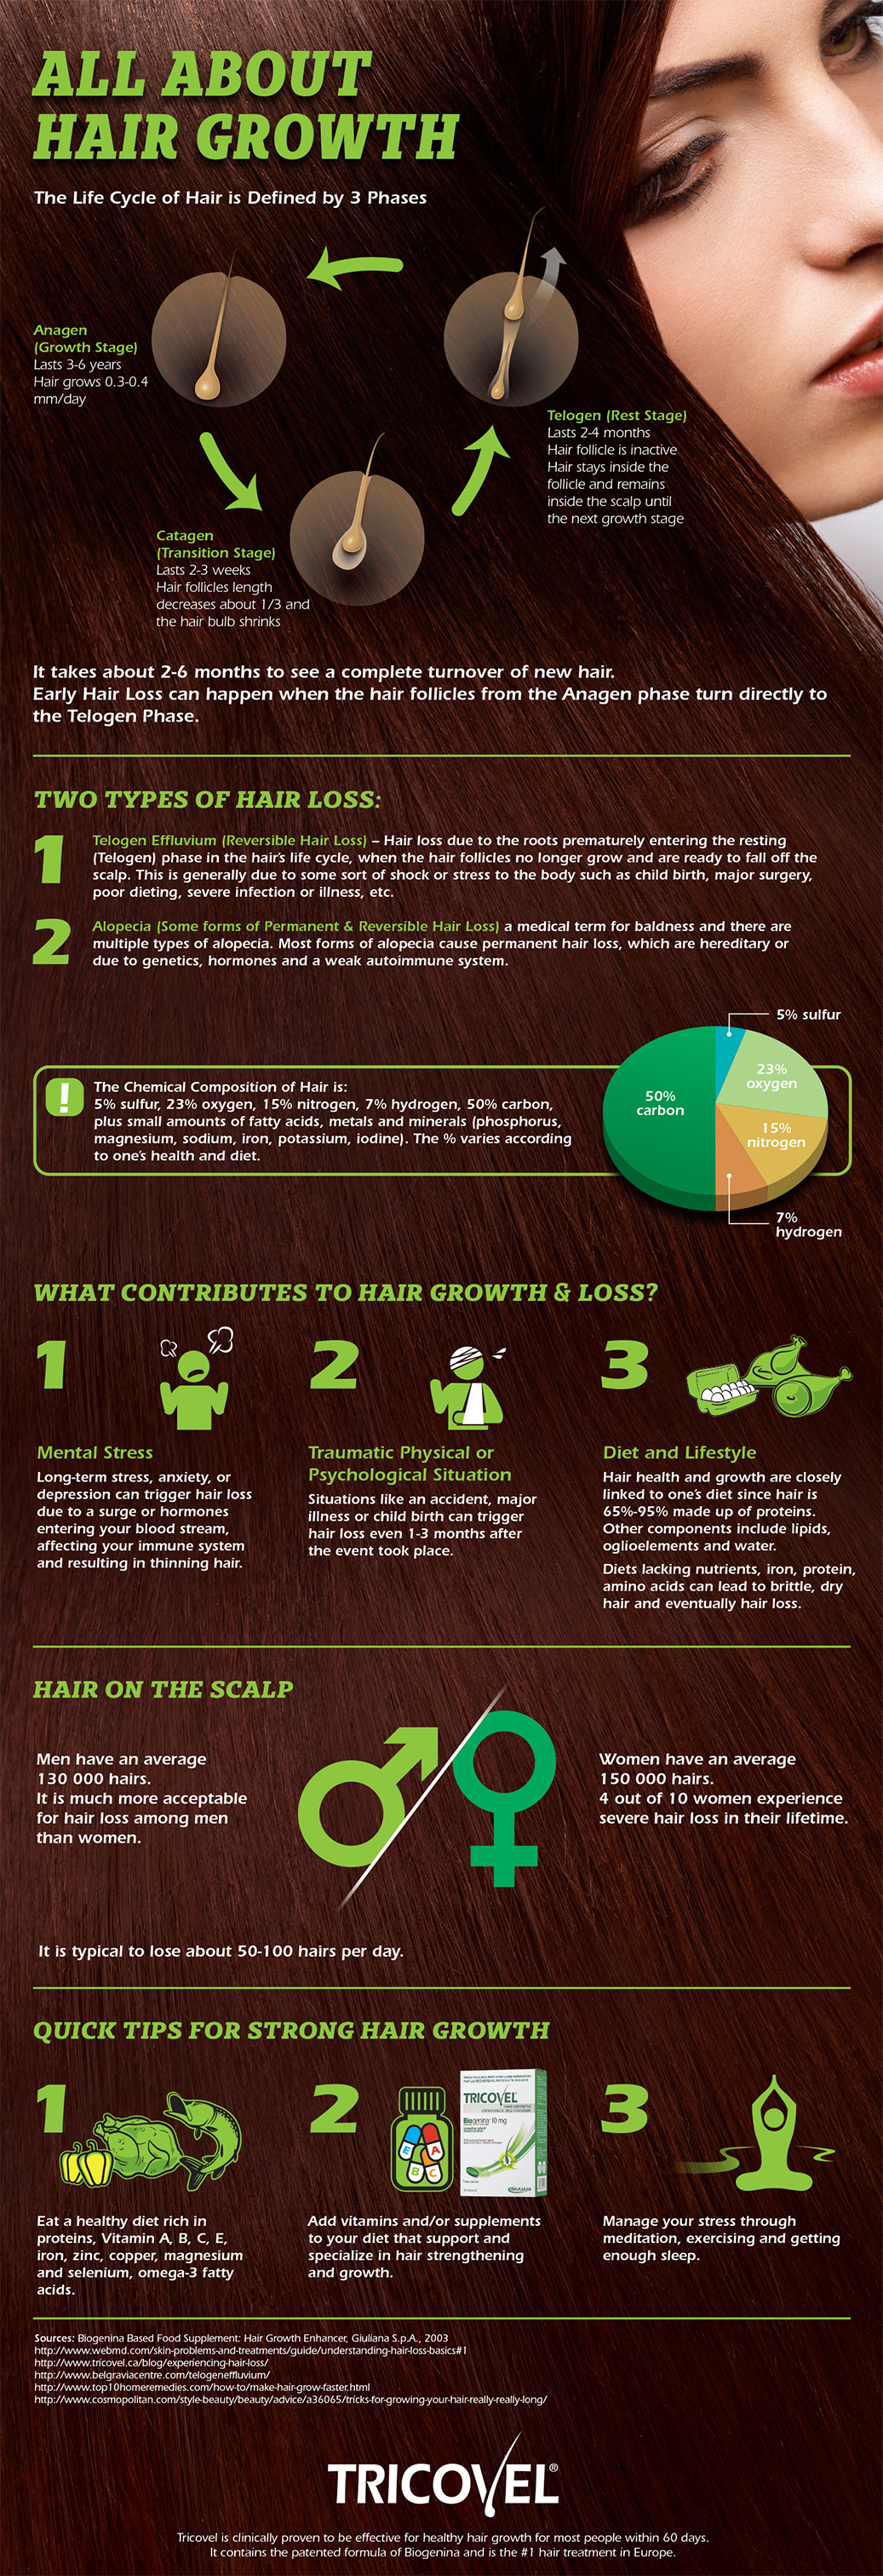 All About Hair Growth Infographic